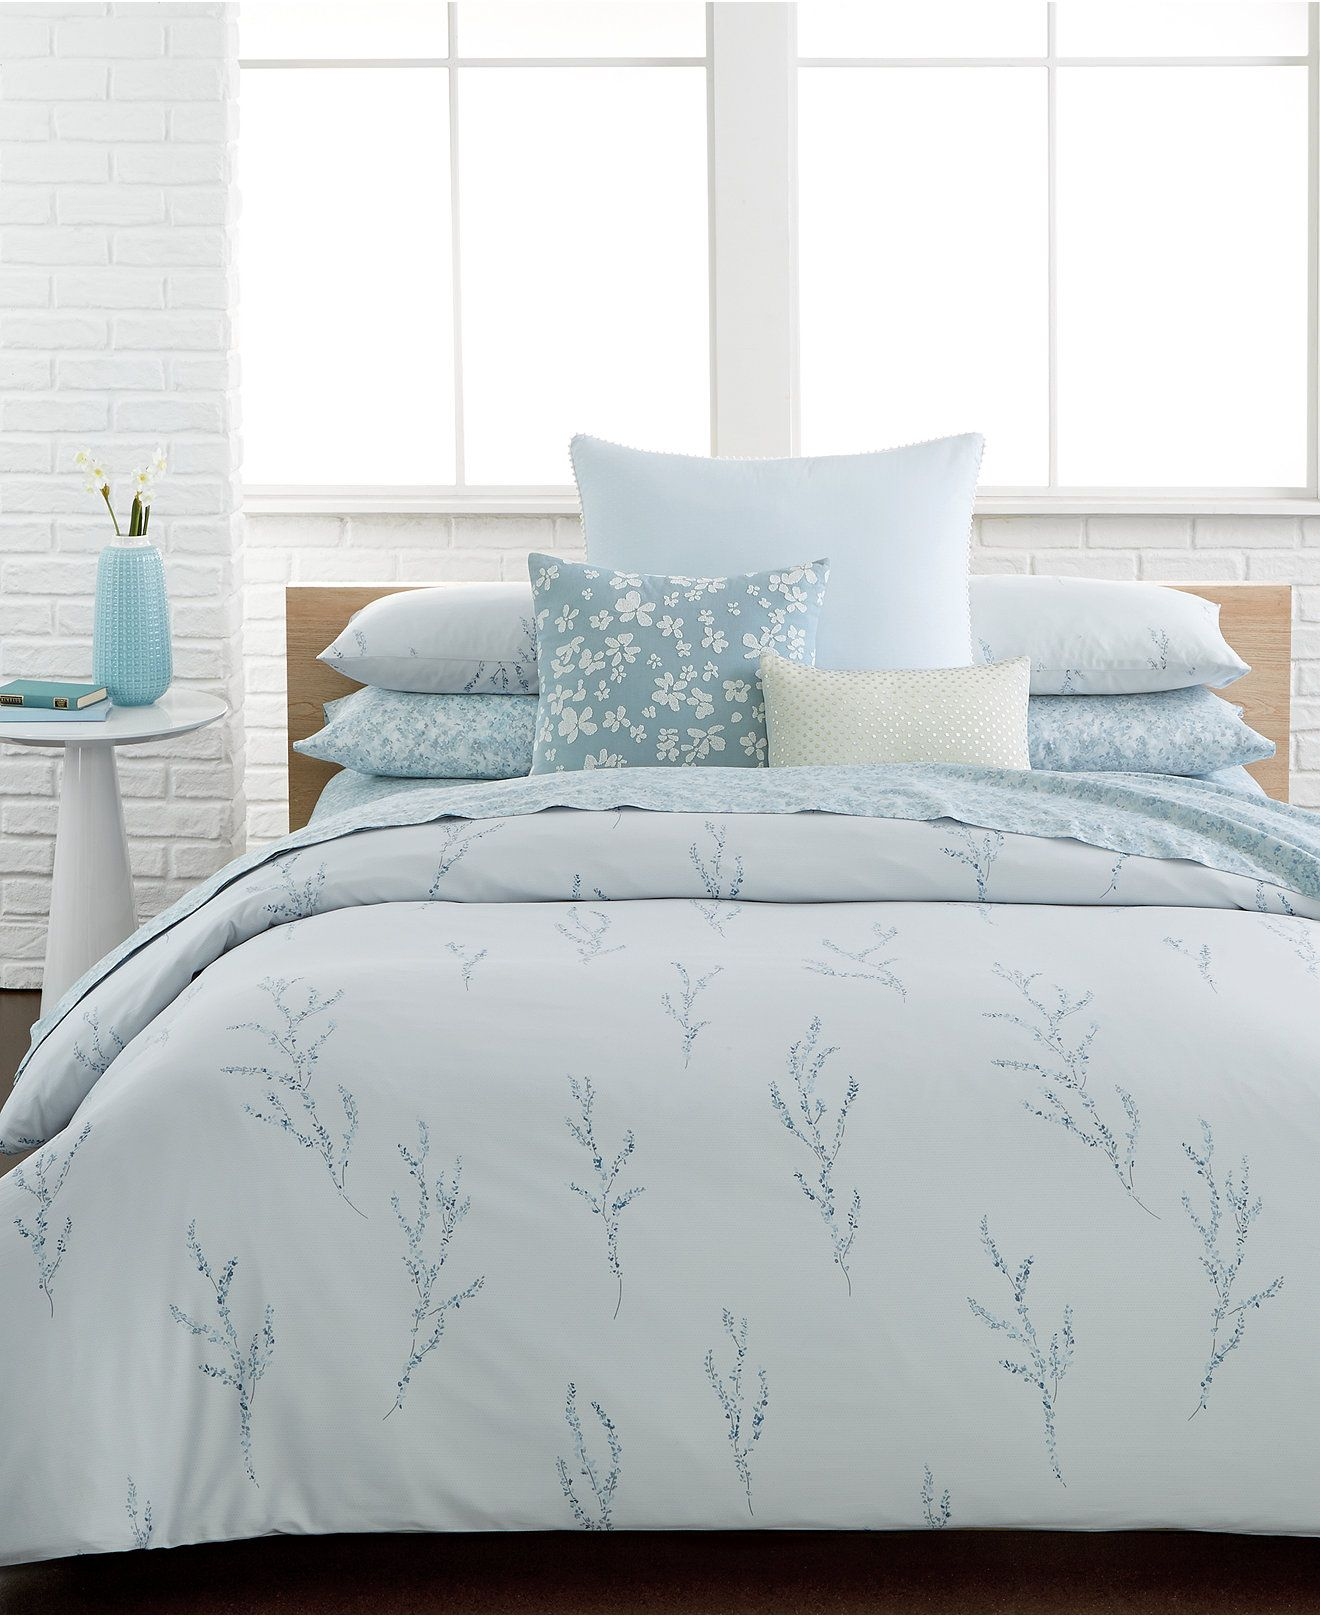 nature marin comfy perfect klein bamboo comforters distinctive fall with duvet sky comforter calvin range to bedding king flowers designs inspired cover launches set